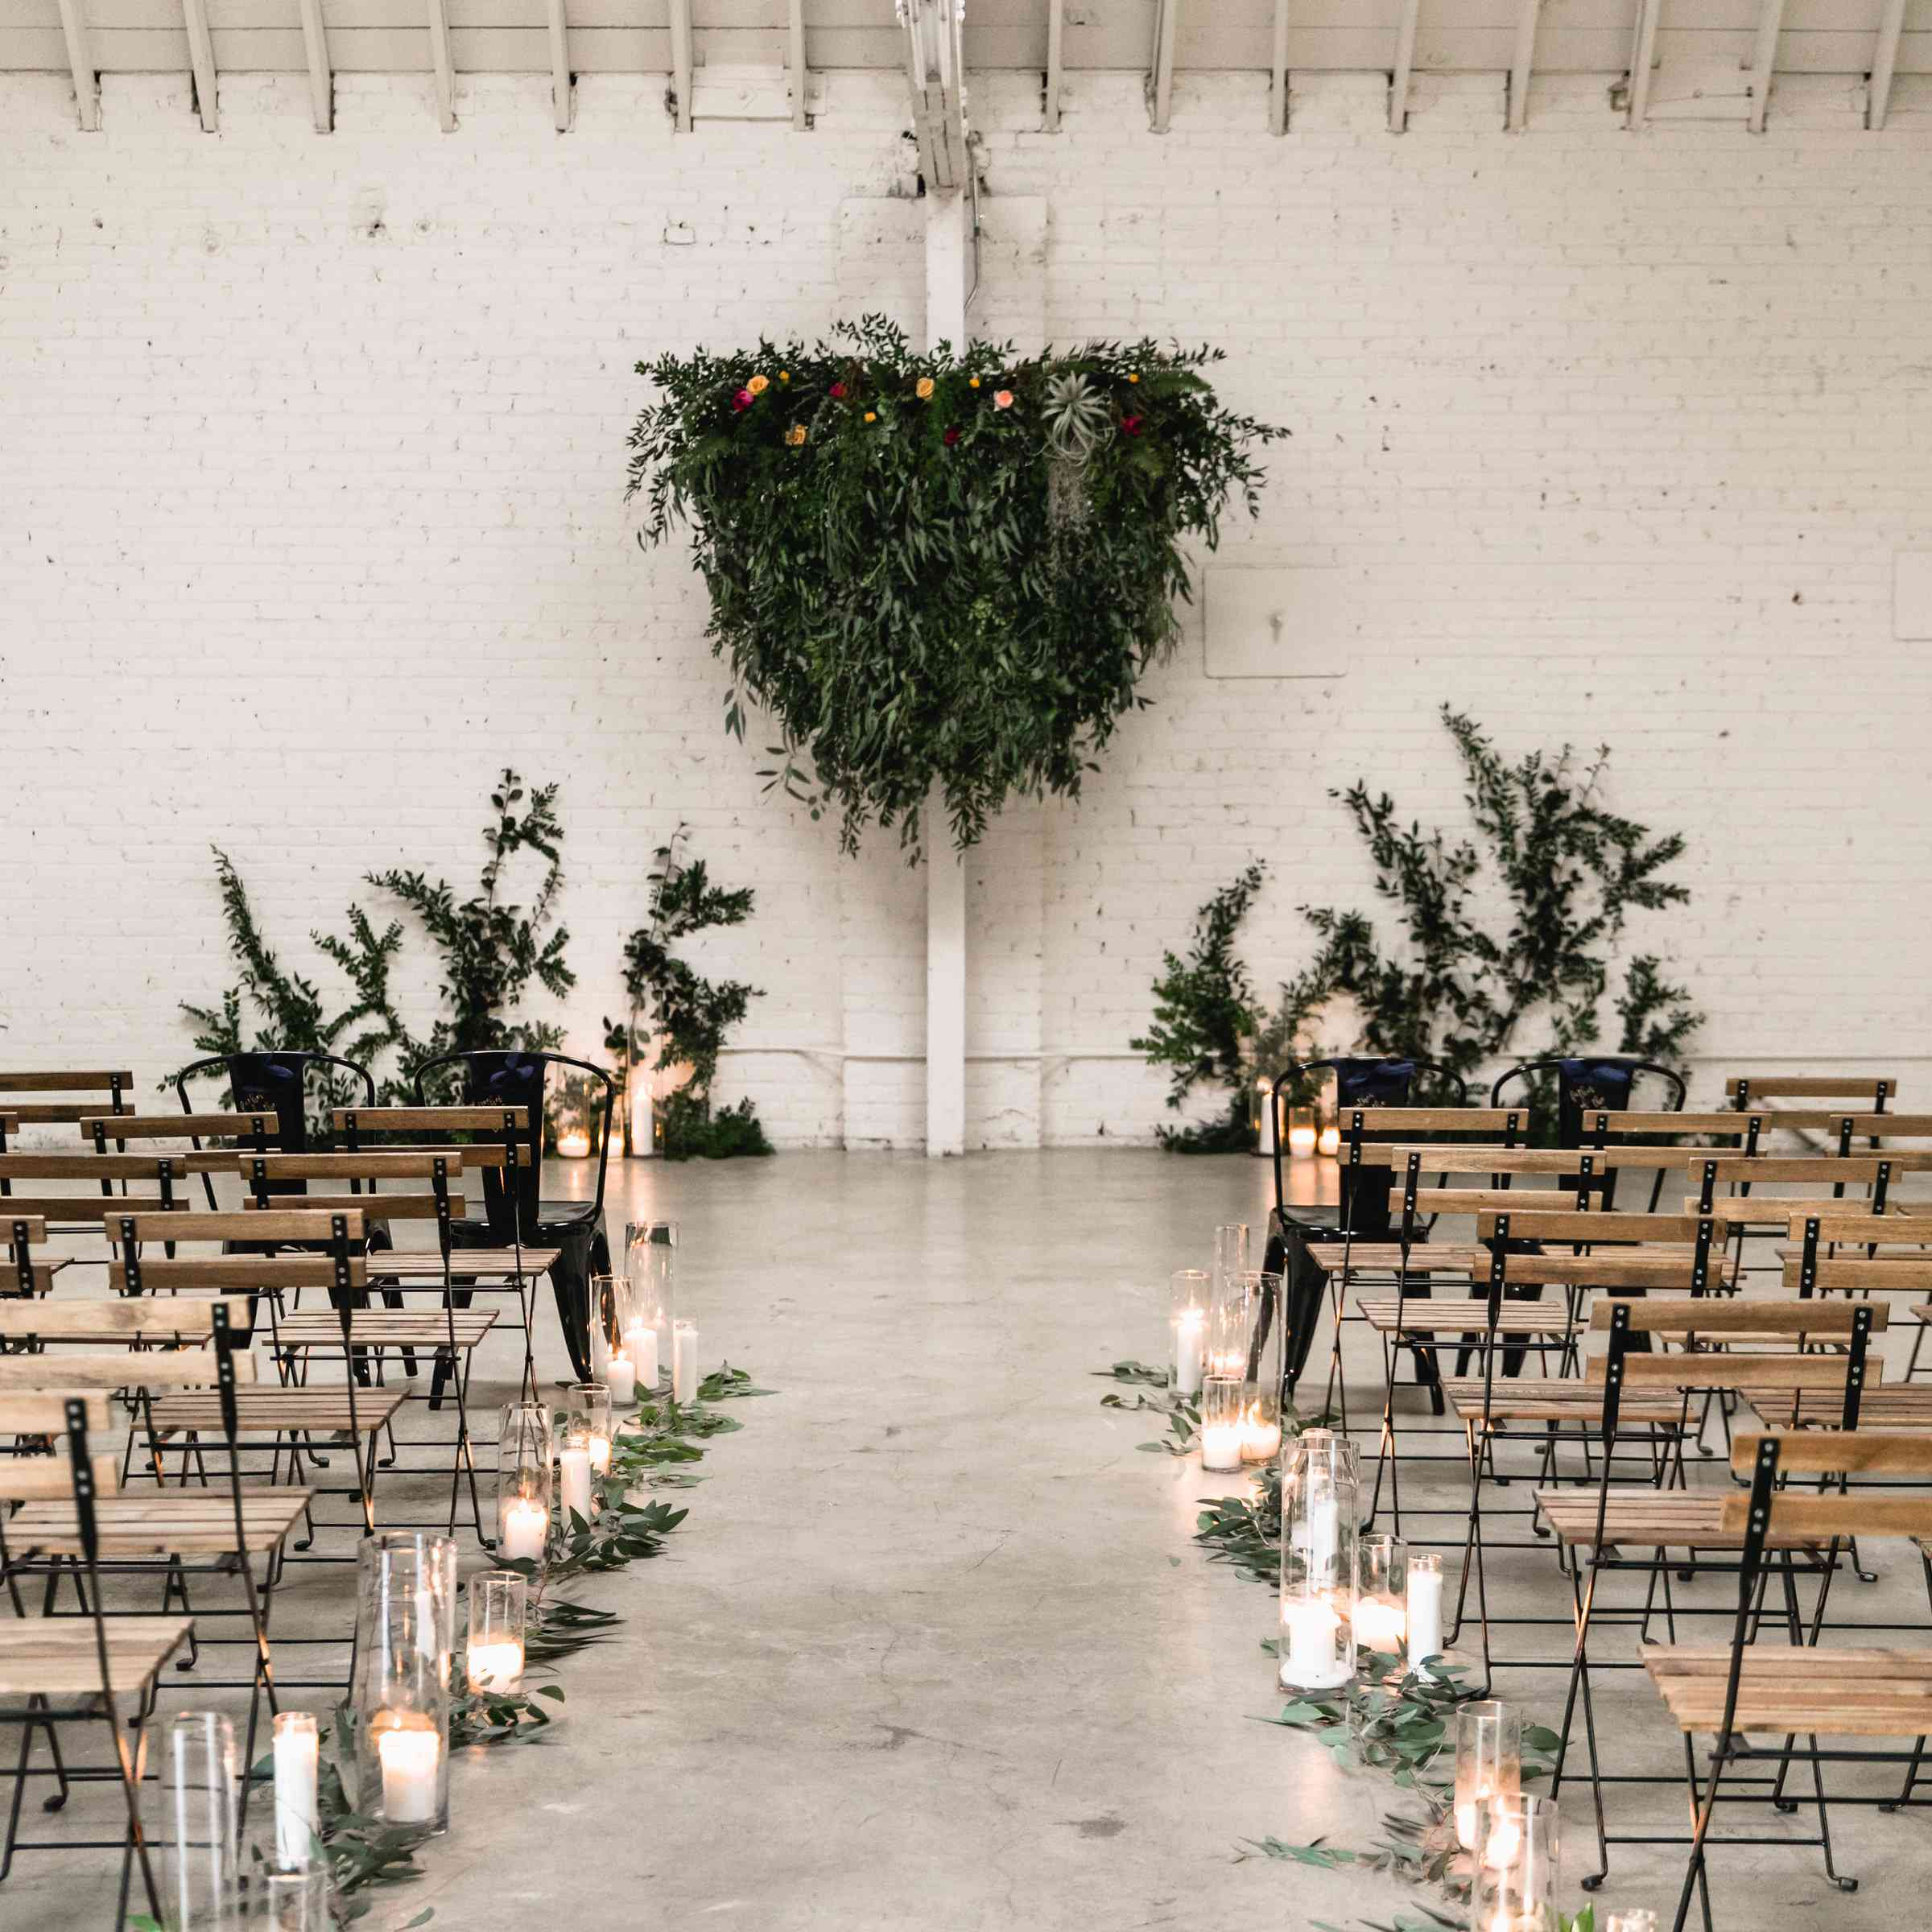 Ceremony aisle on concrete floor decorated in foliage and candles